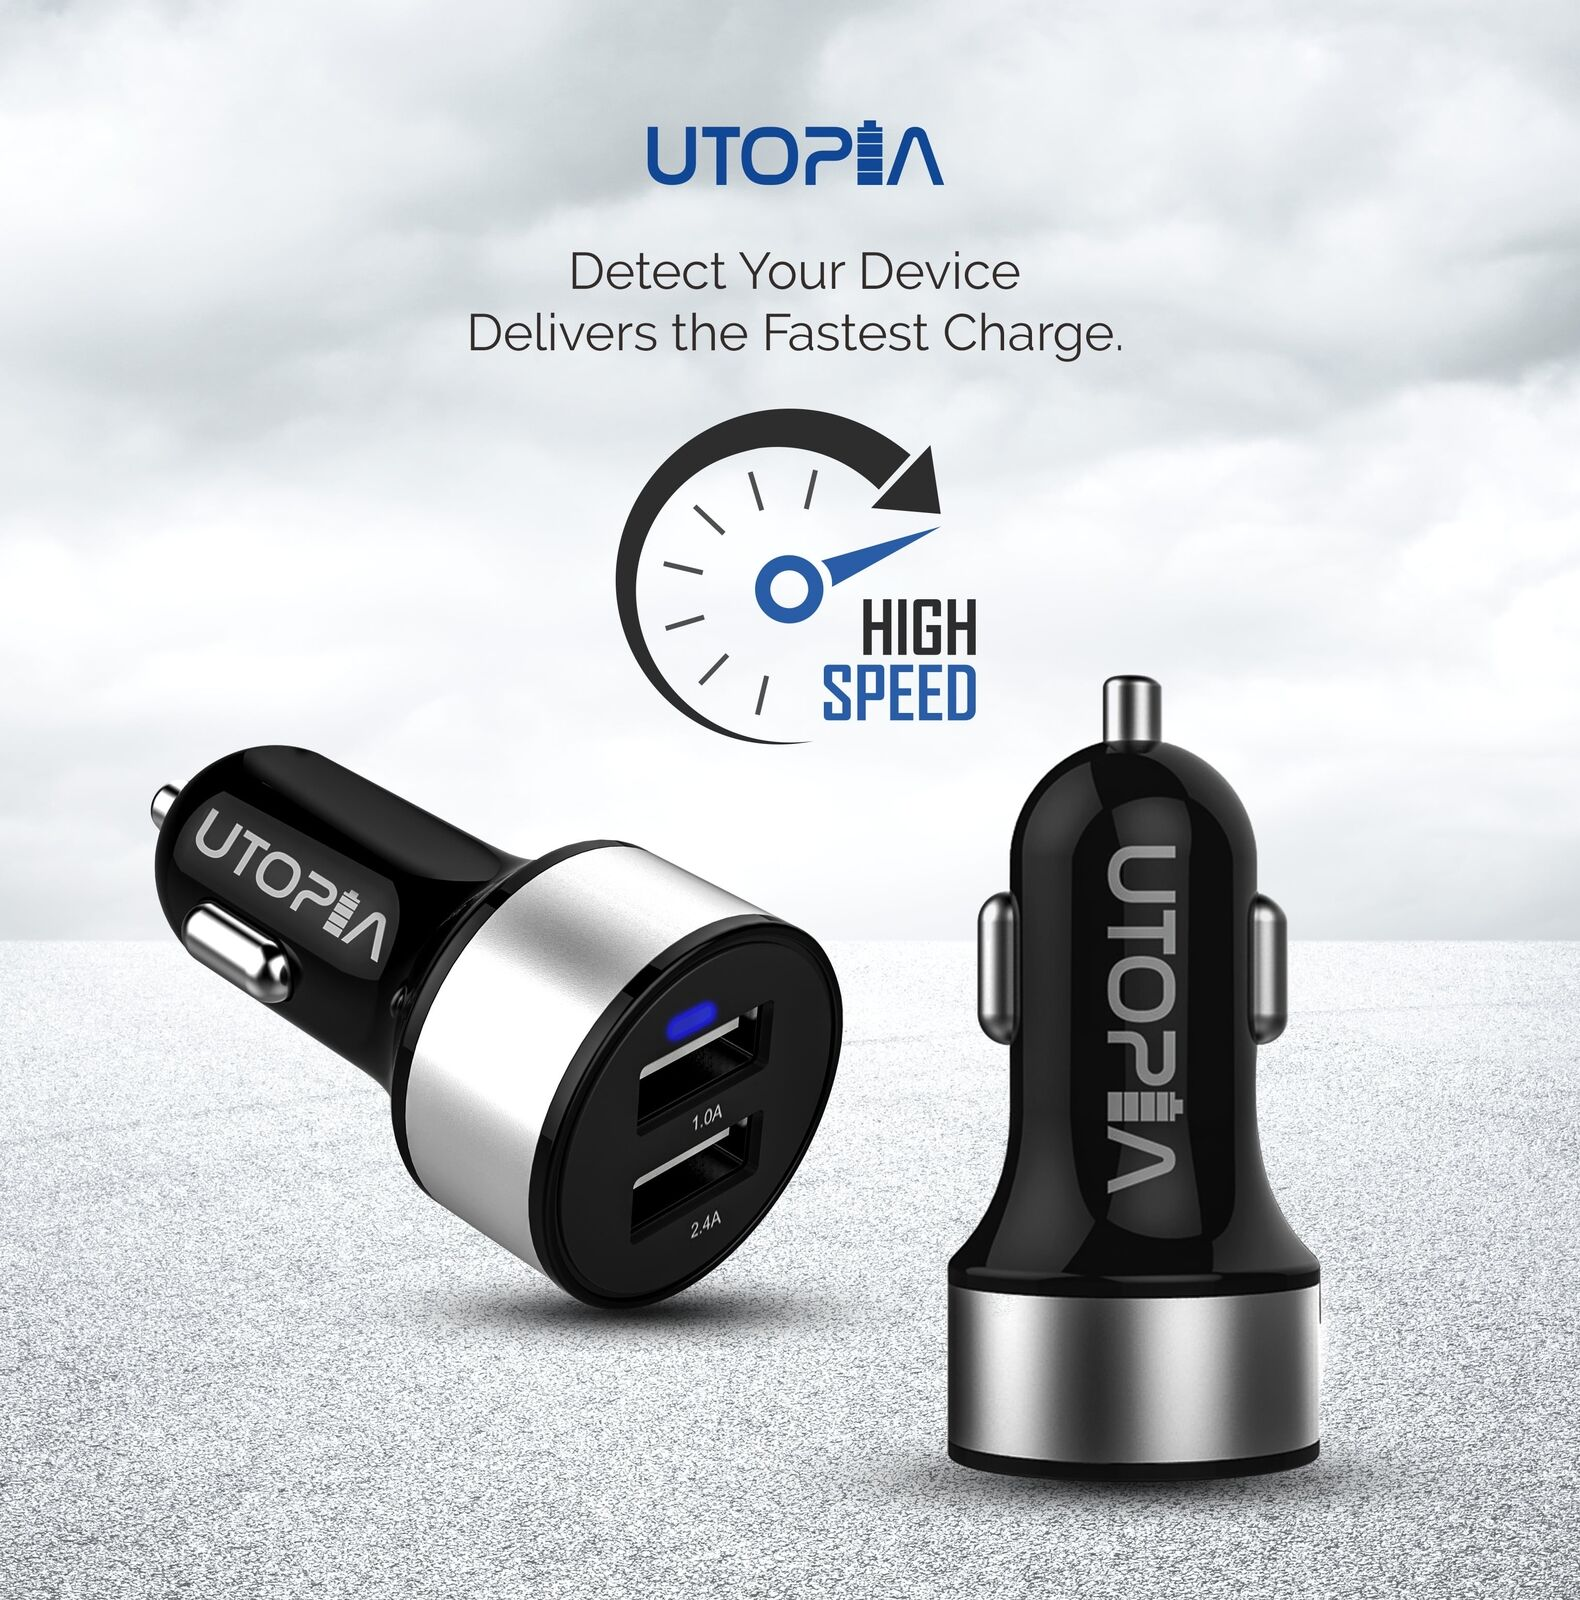 Usb Car Charger Adapter Dual 2 Smart Port Fast Charging 12v 24a Spigen Compact 1 Of 9free Shipping